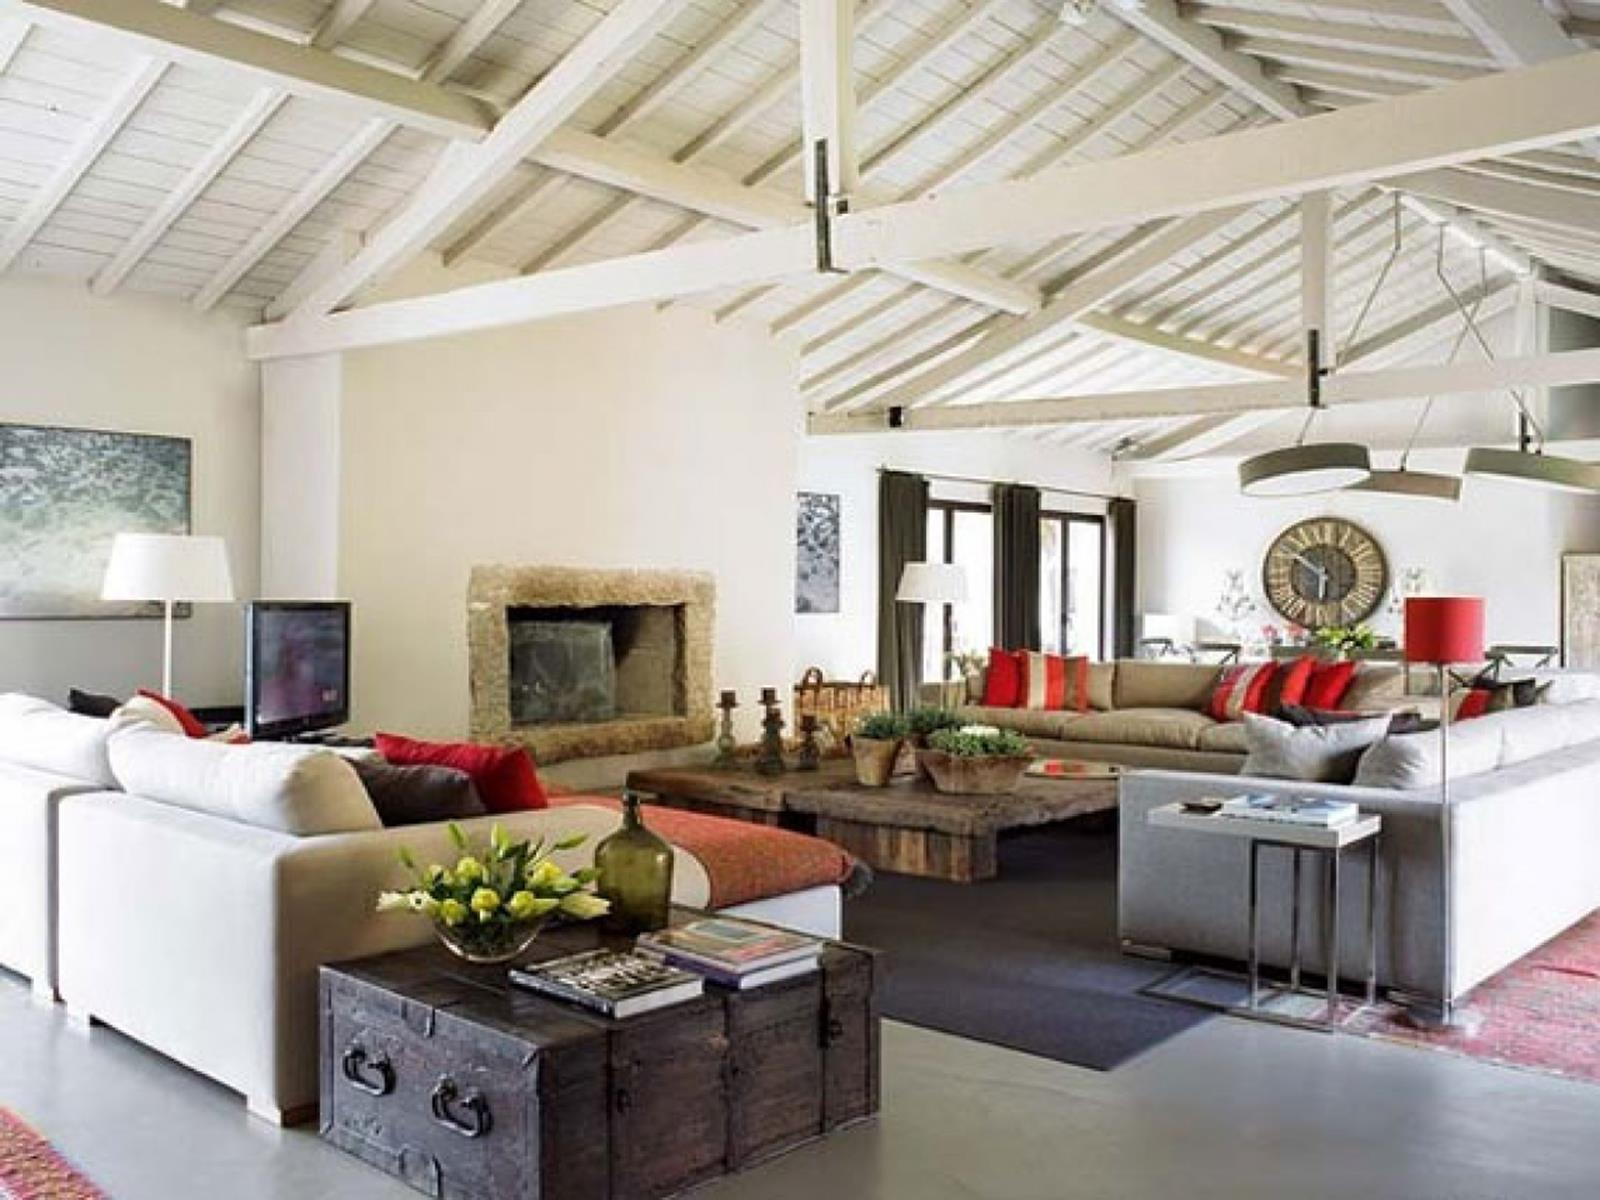 City Chic Living Room Decorating Ideas On a Budget 25